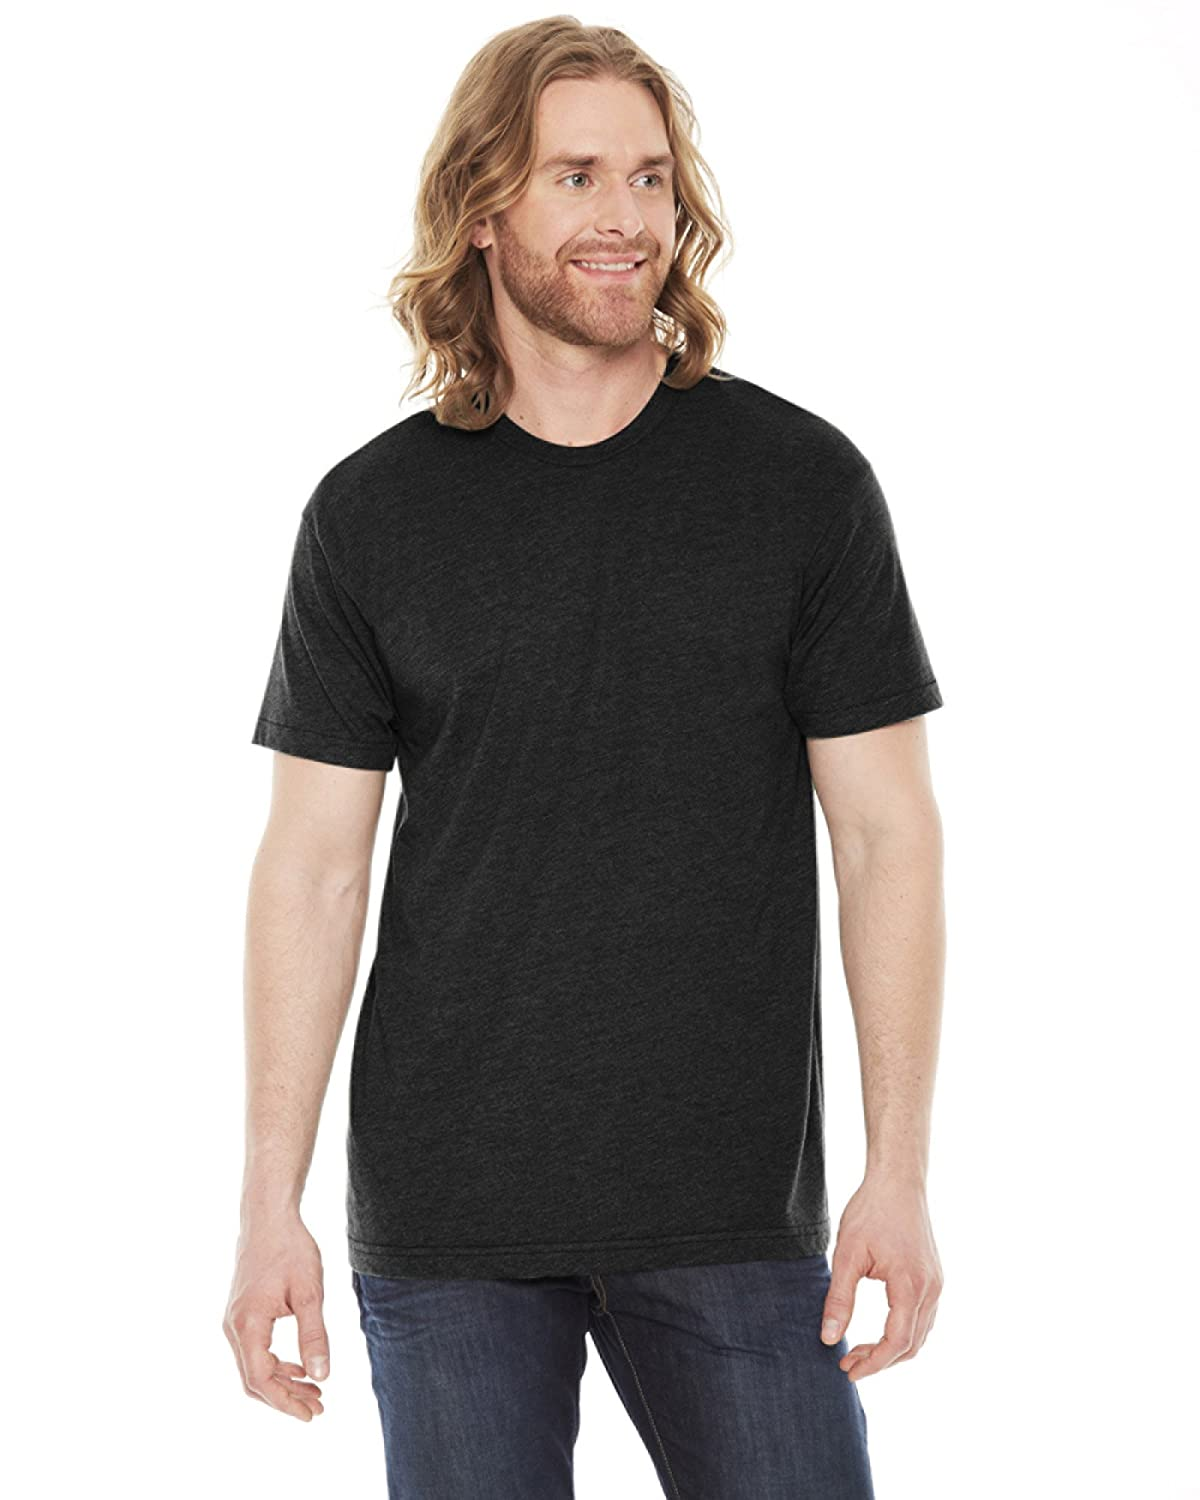 American Apparel Unisex Poly/cotton Short Sleeve Crew Neck T - Heather Black - S